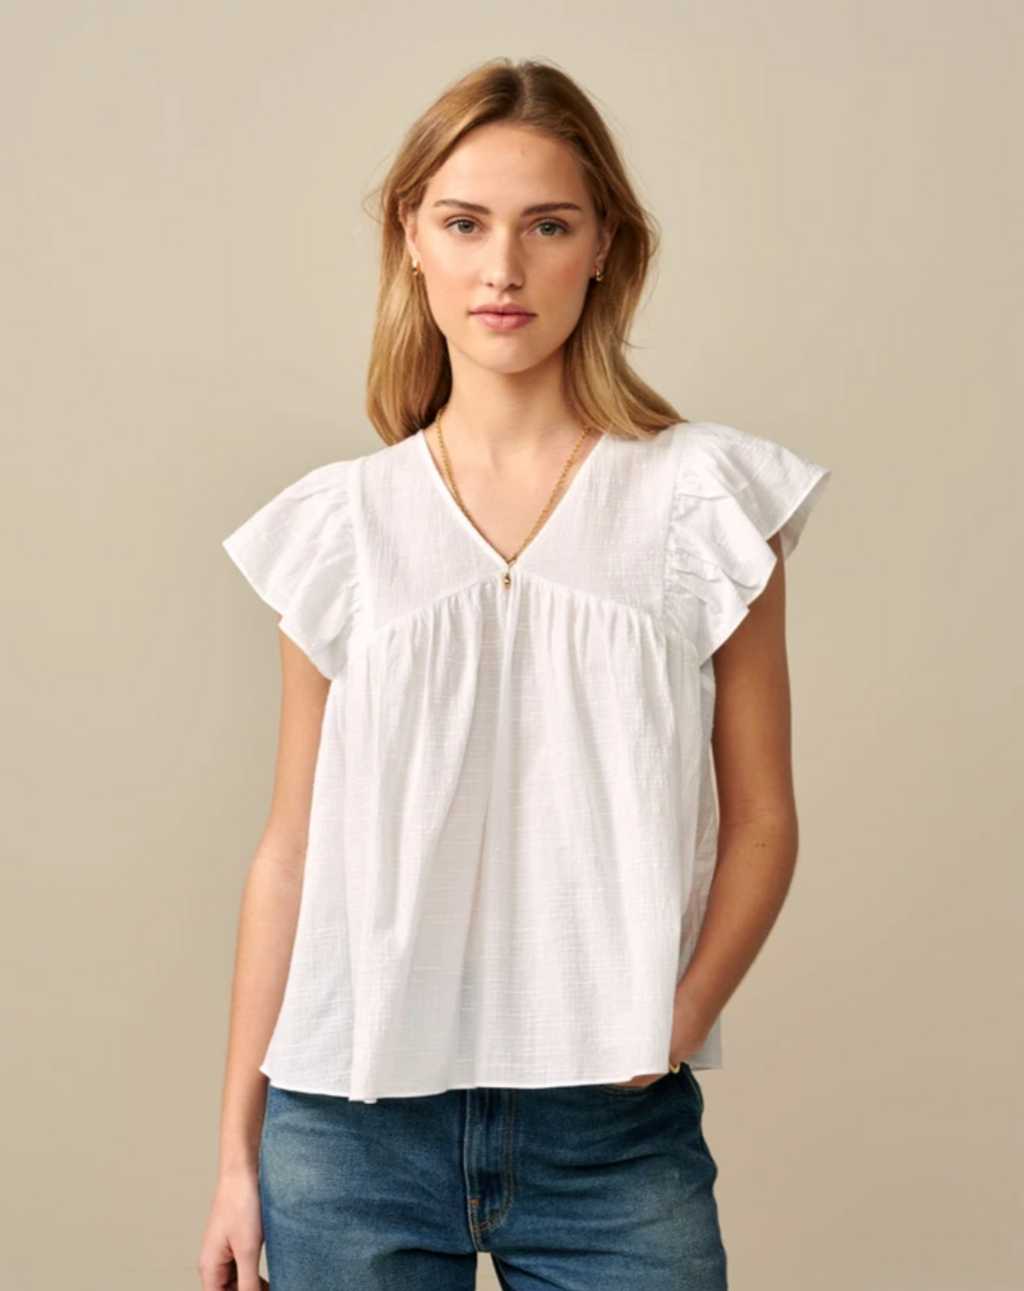 Casual yet unabashedly feminine aesthetic. With its ruffled cap sleeves, V neckline and a fully pleated front, our Hourra blouse capture the essence of a casual yet unabashedly feminine aesthetic. Crafted from a soft and textured 100% cotton, it will be perfect for your weekend wardrobe. Wear it with boyfriend jeans and a pair of slip-on or espadrilles.